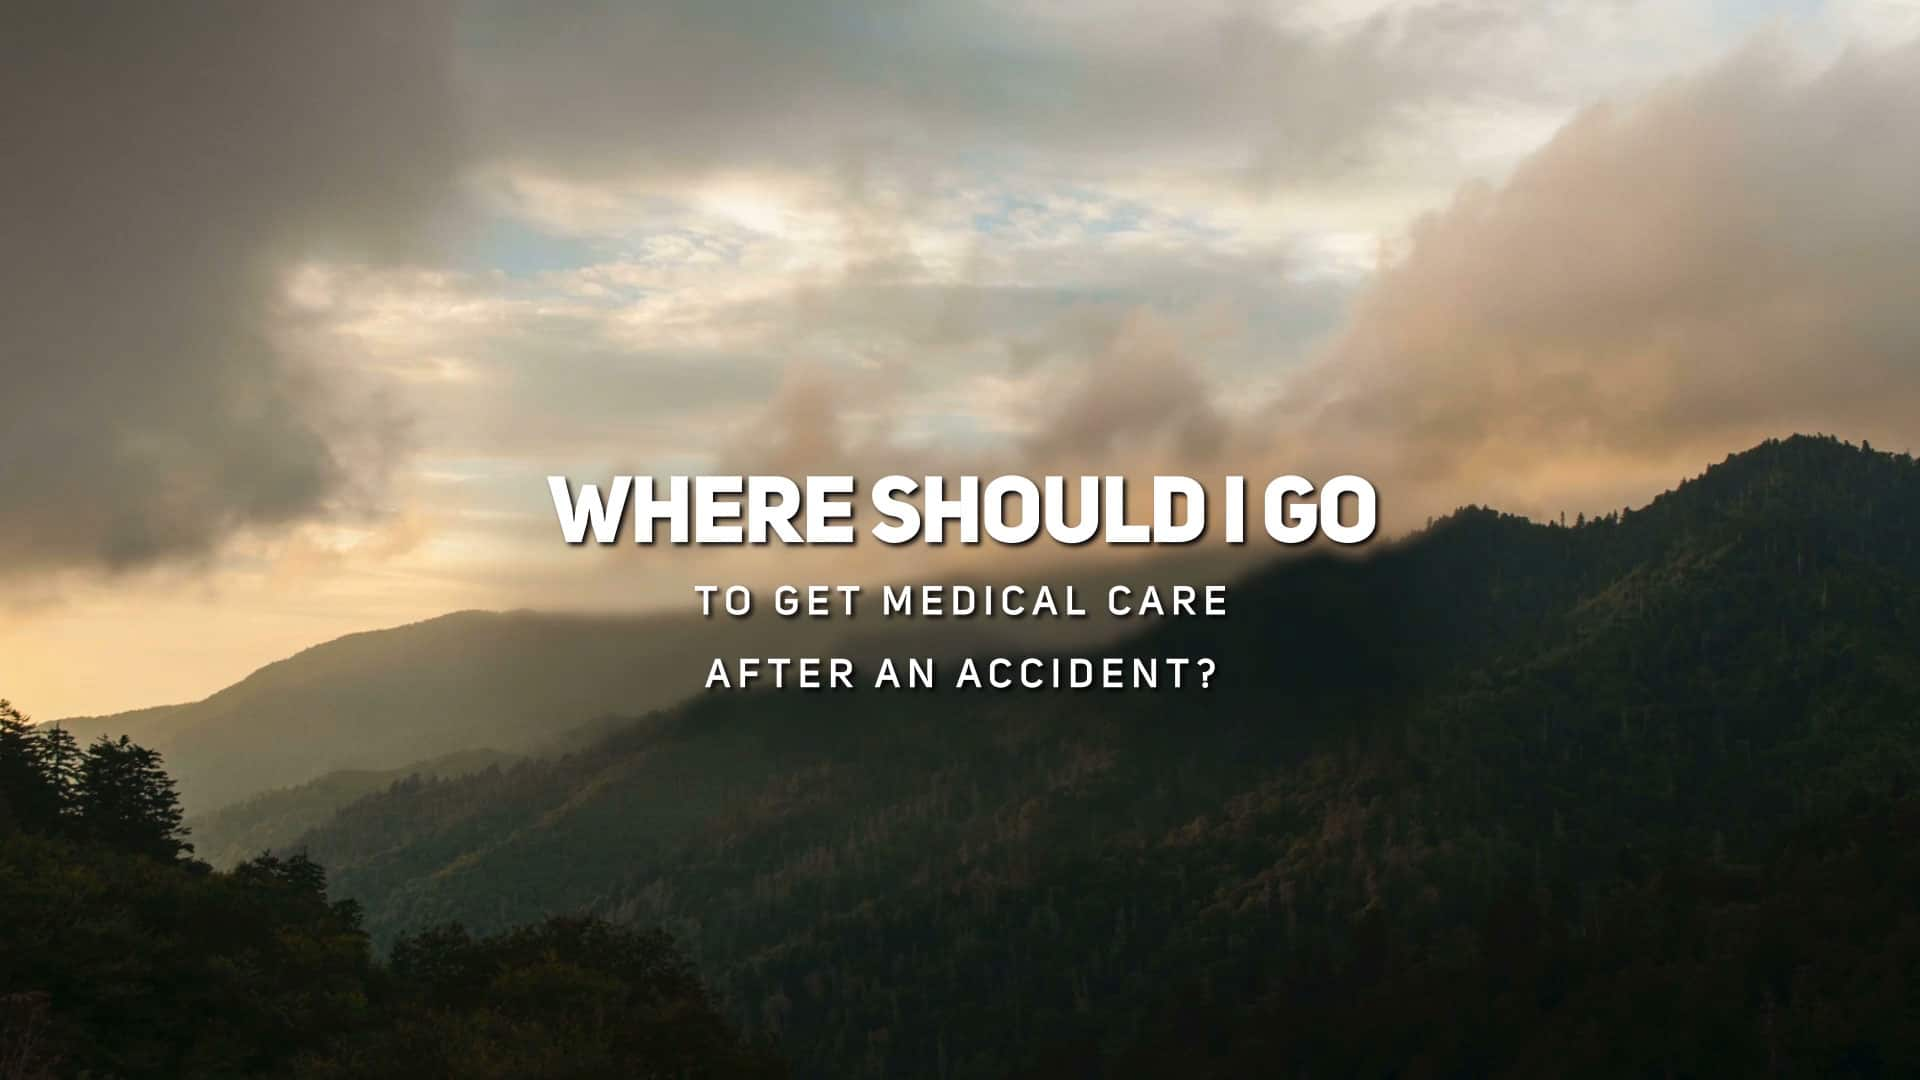 Where Should I Go to Get Medical Care After an Accident